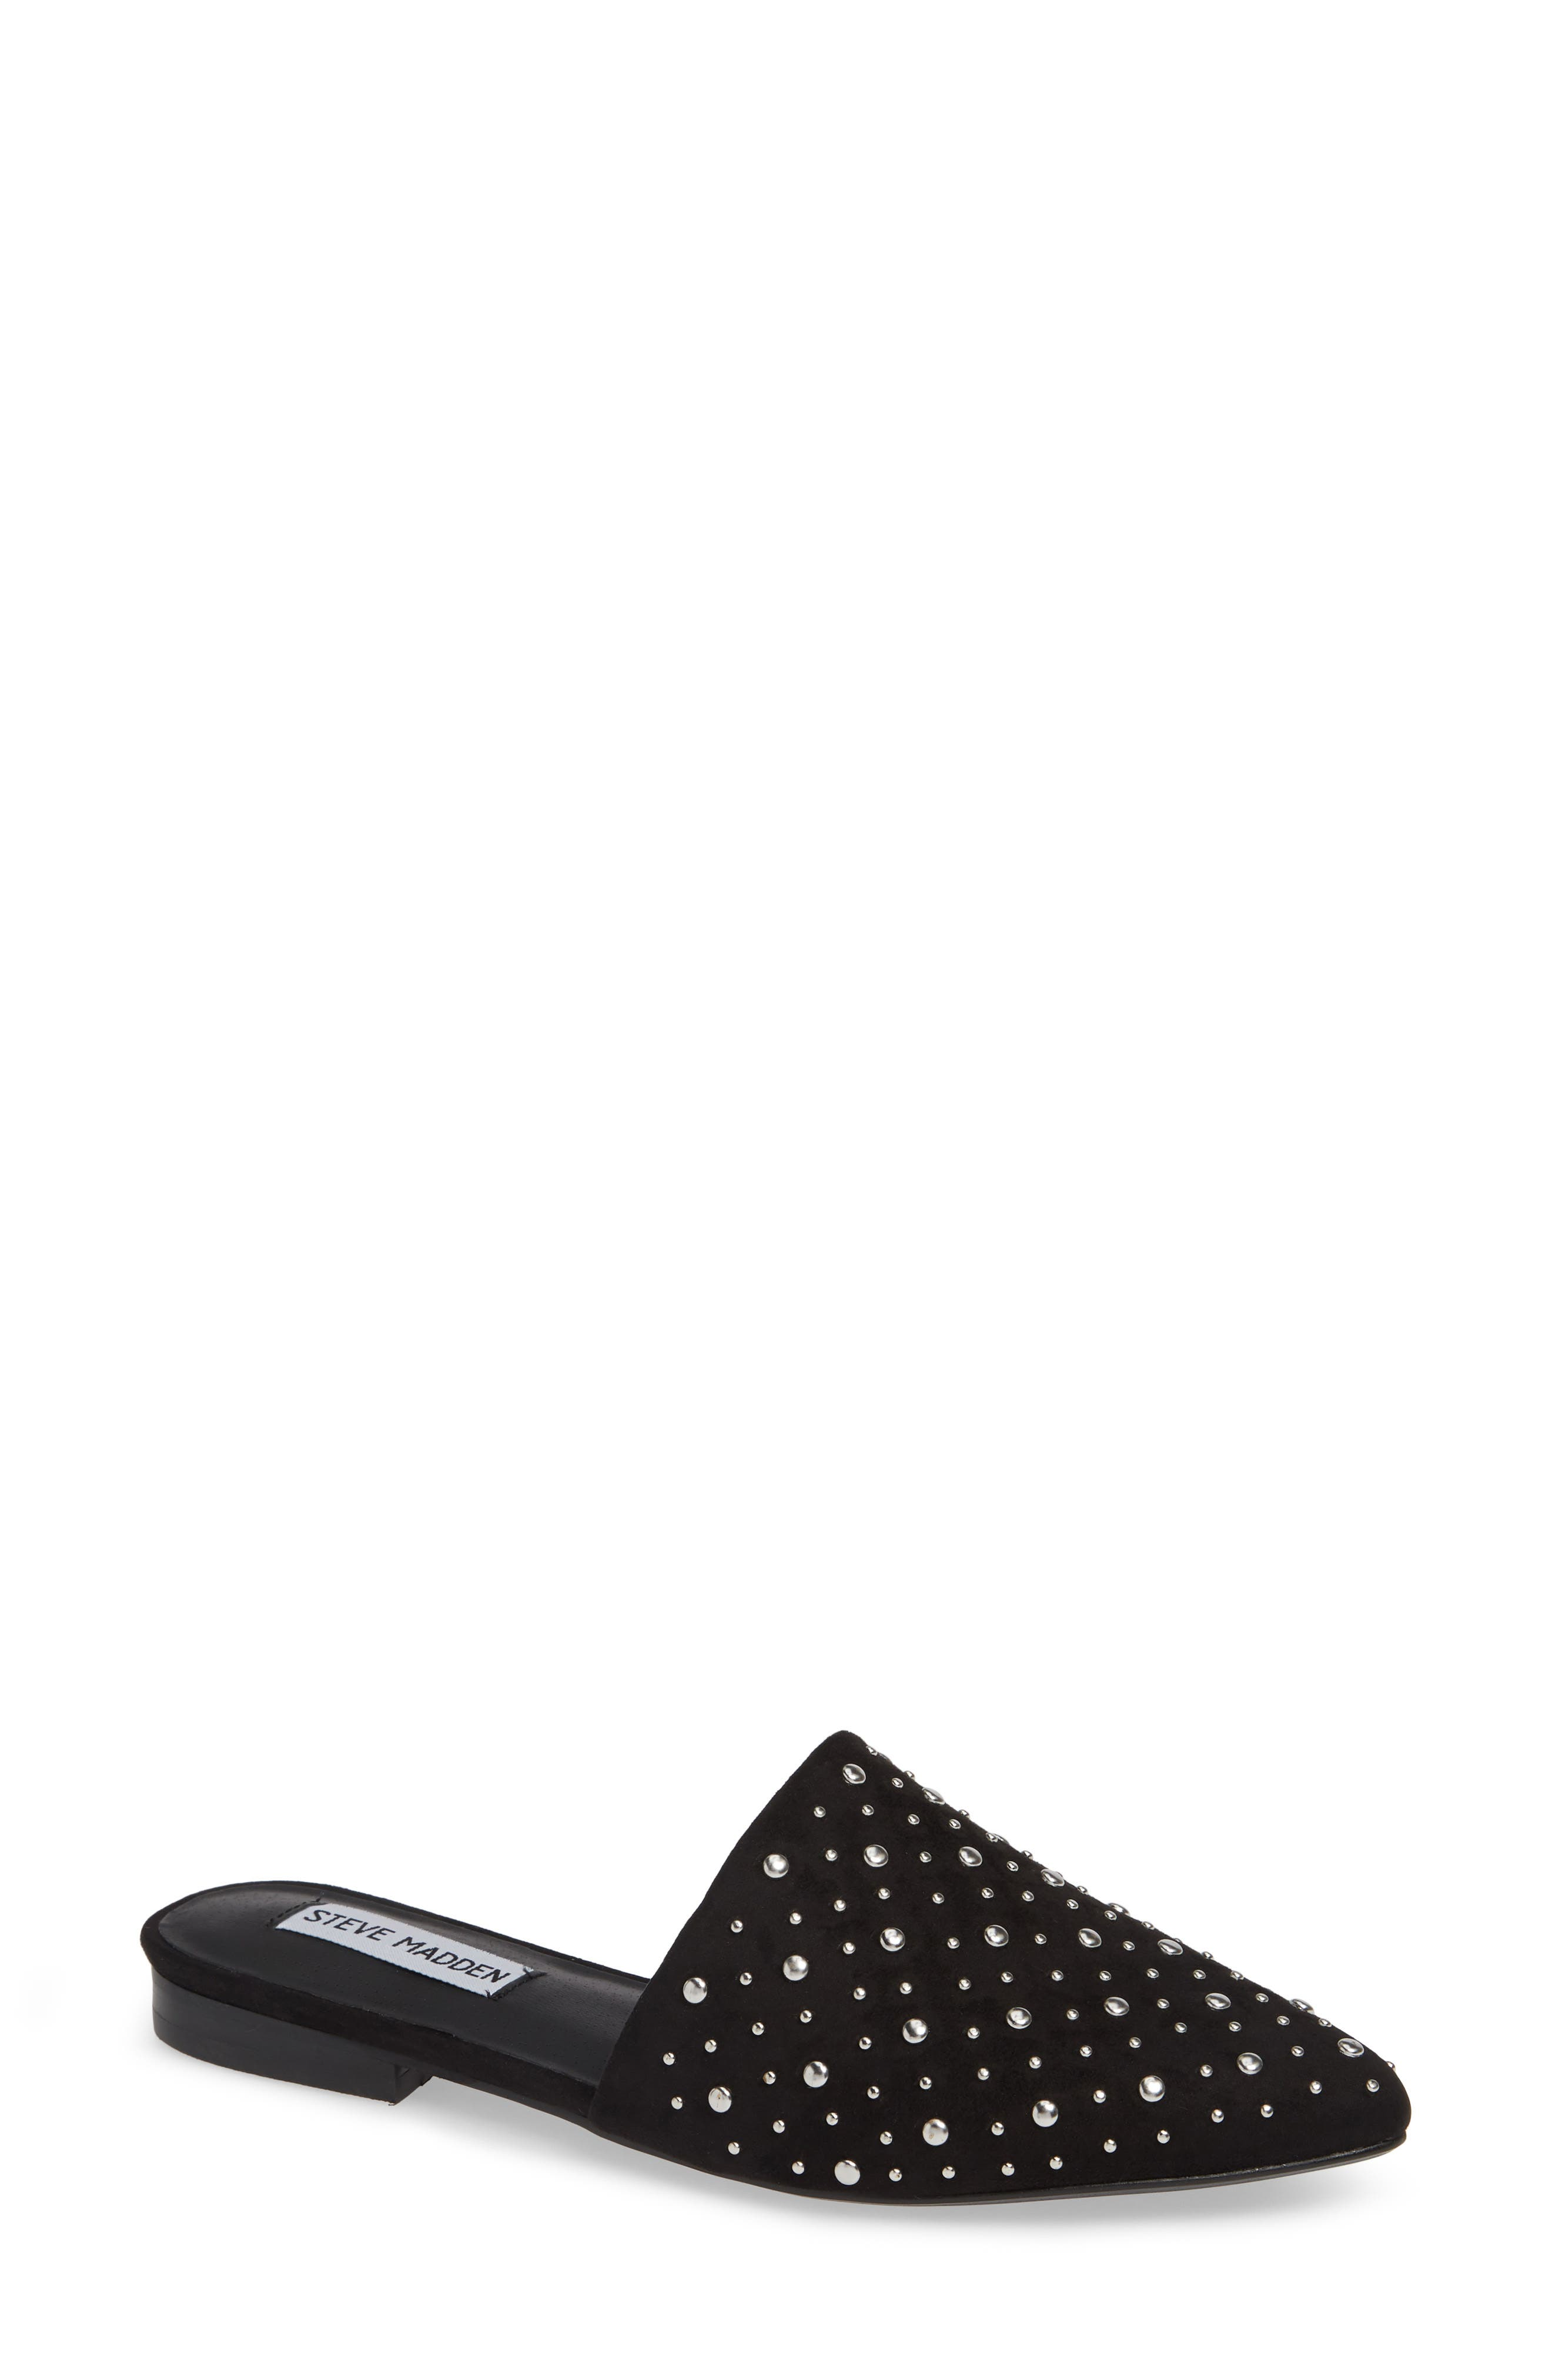 STEVE MADDEN Tempo Studded Mule, Main, color, 001